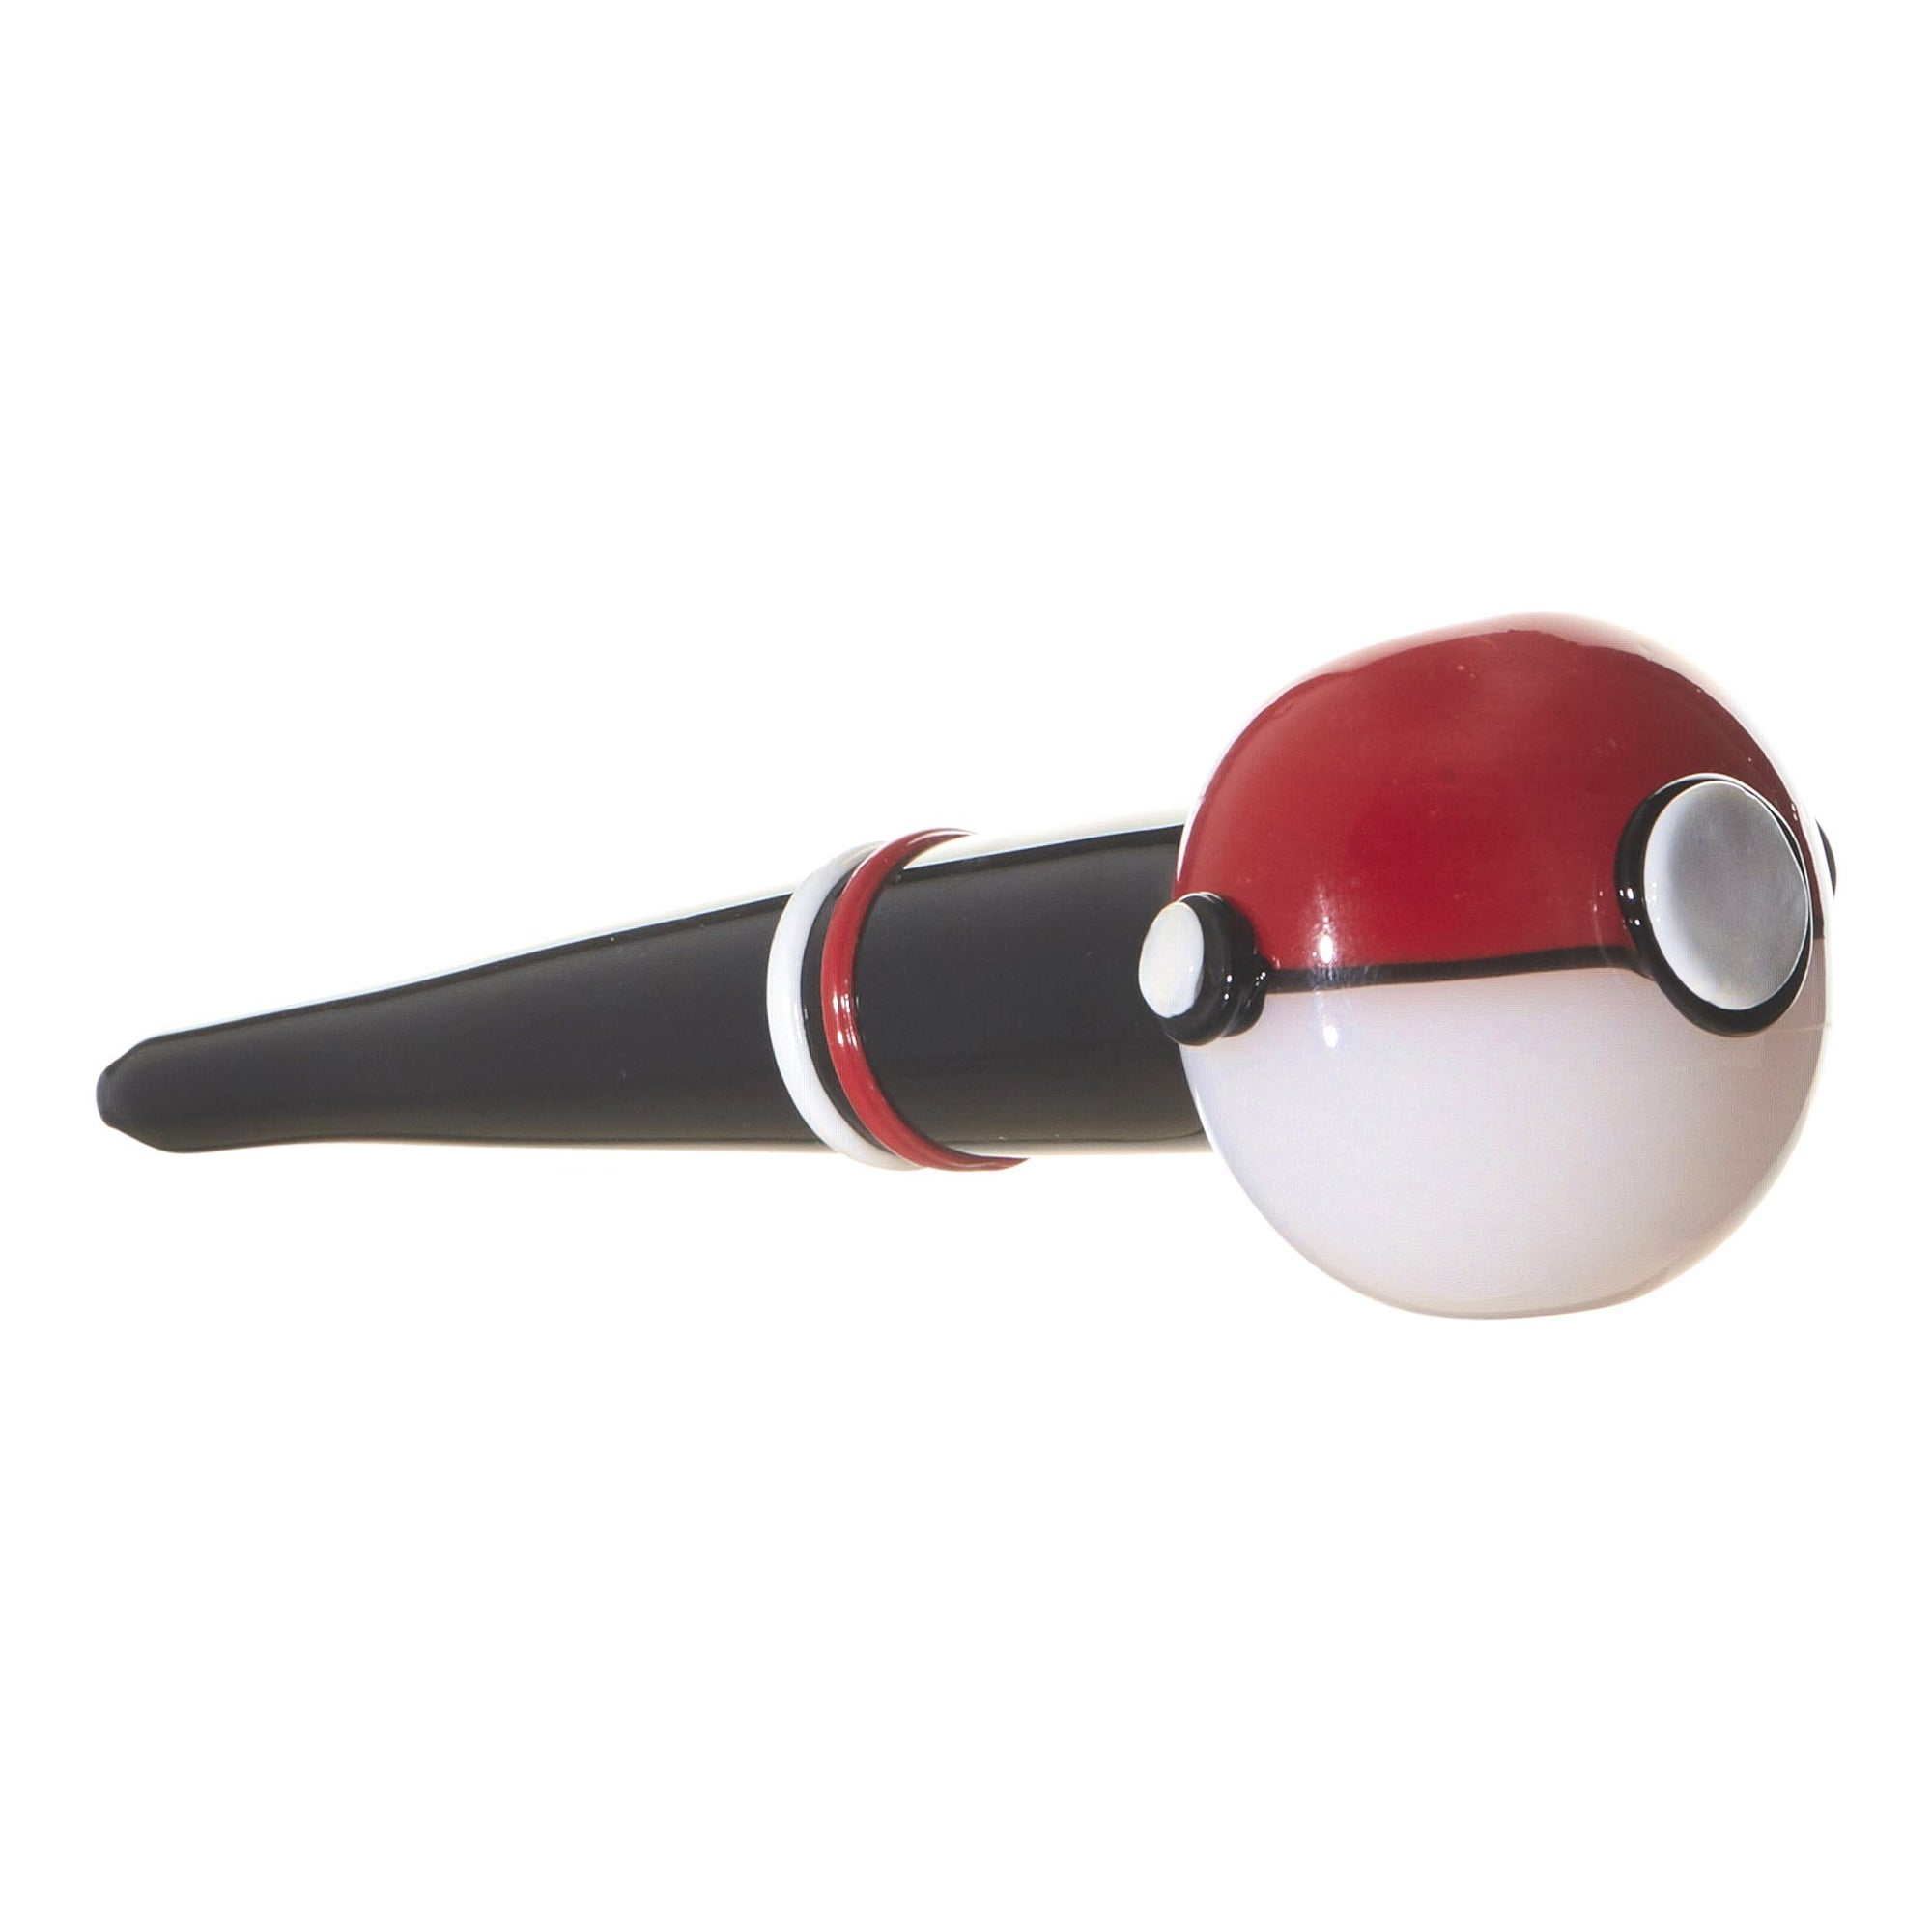 Poke Ball Pipe - 7in